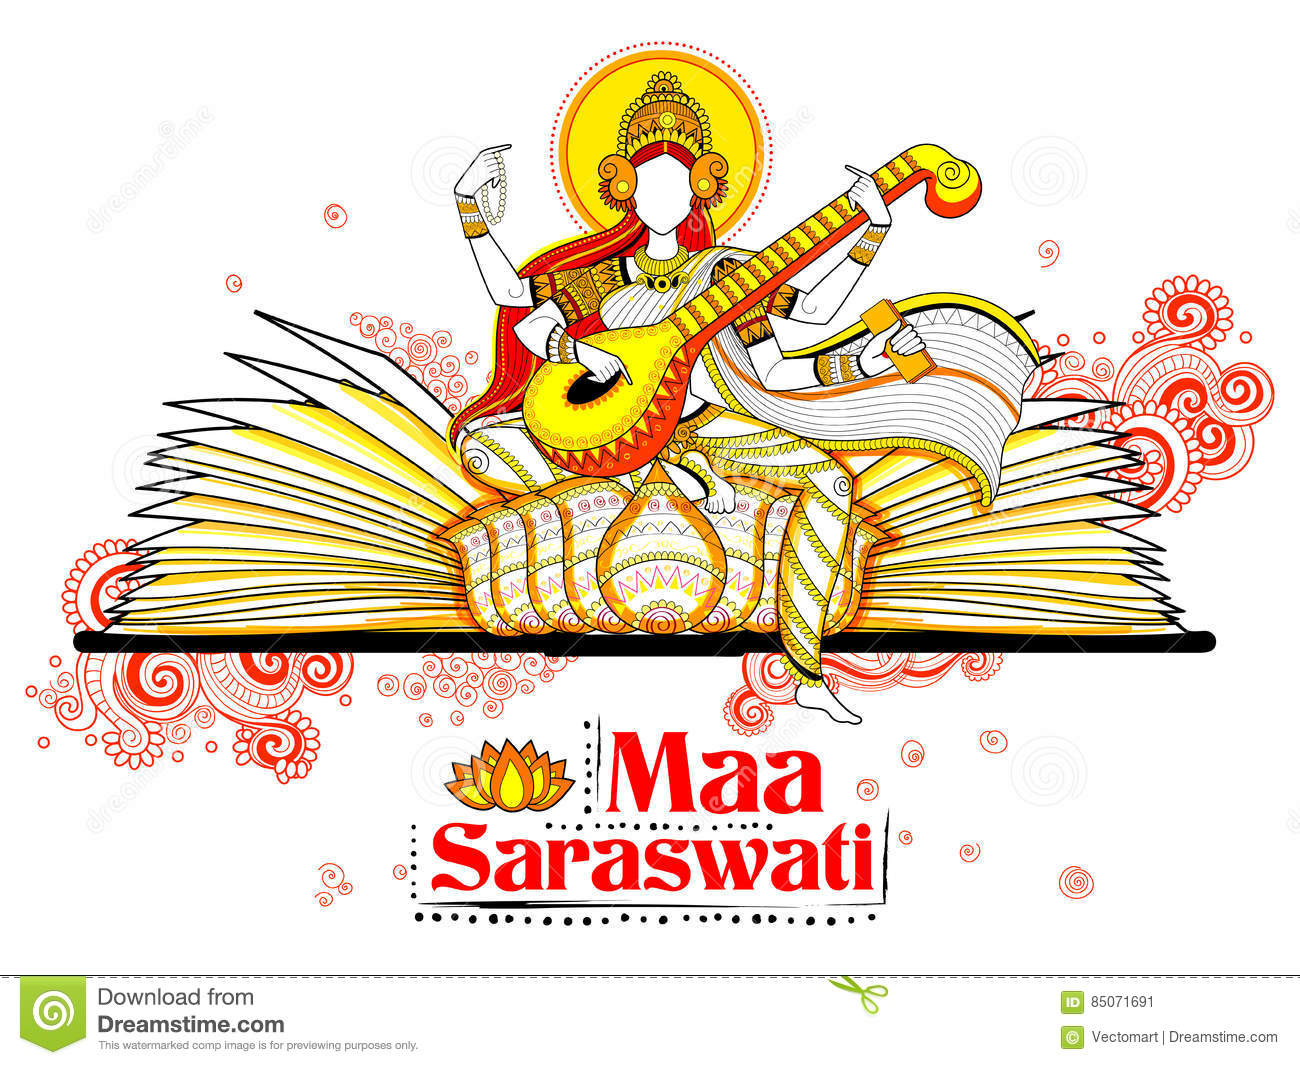 Goddess Of Wisdom Saraswati For Vasant Panchami India Festival.